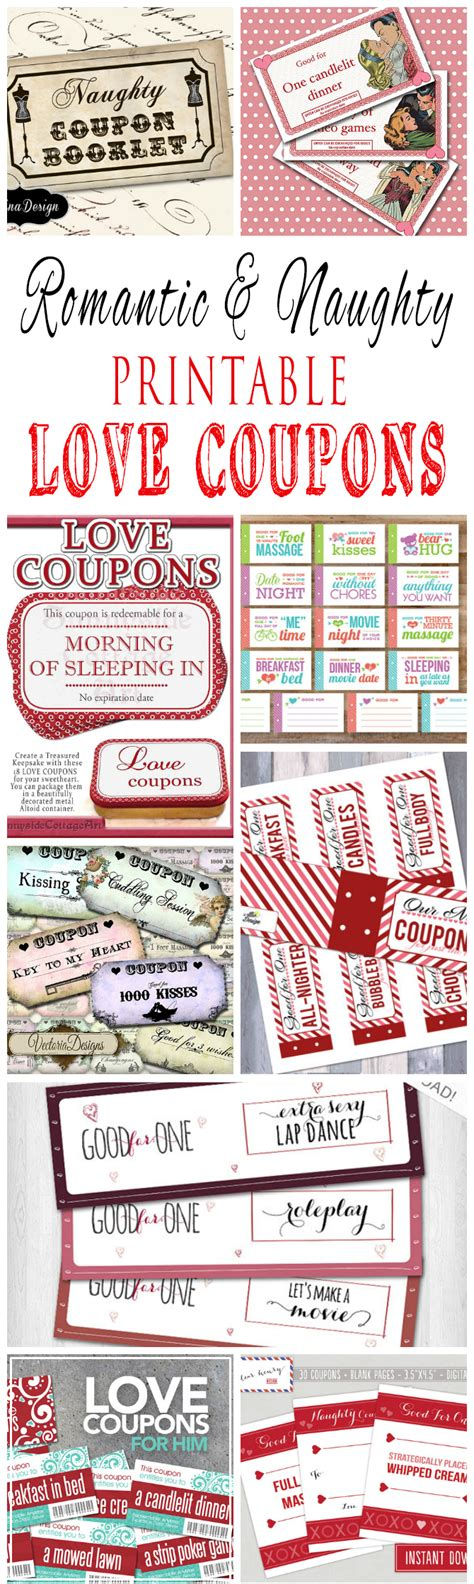 printable boyfriend vouchers romantic and naughty printable love coupons for him